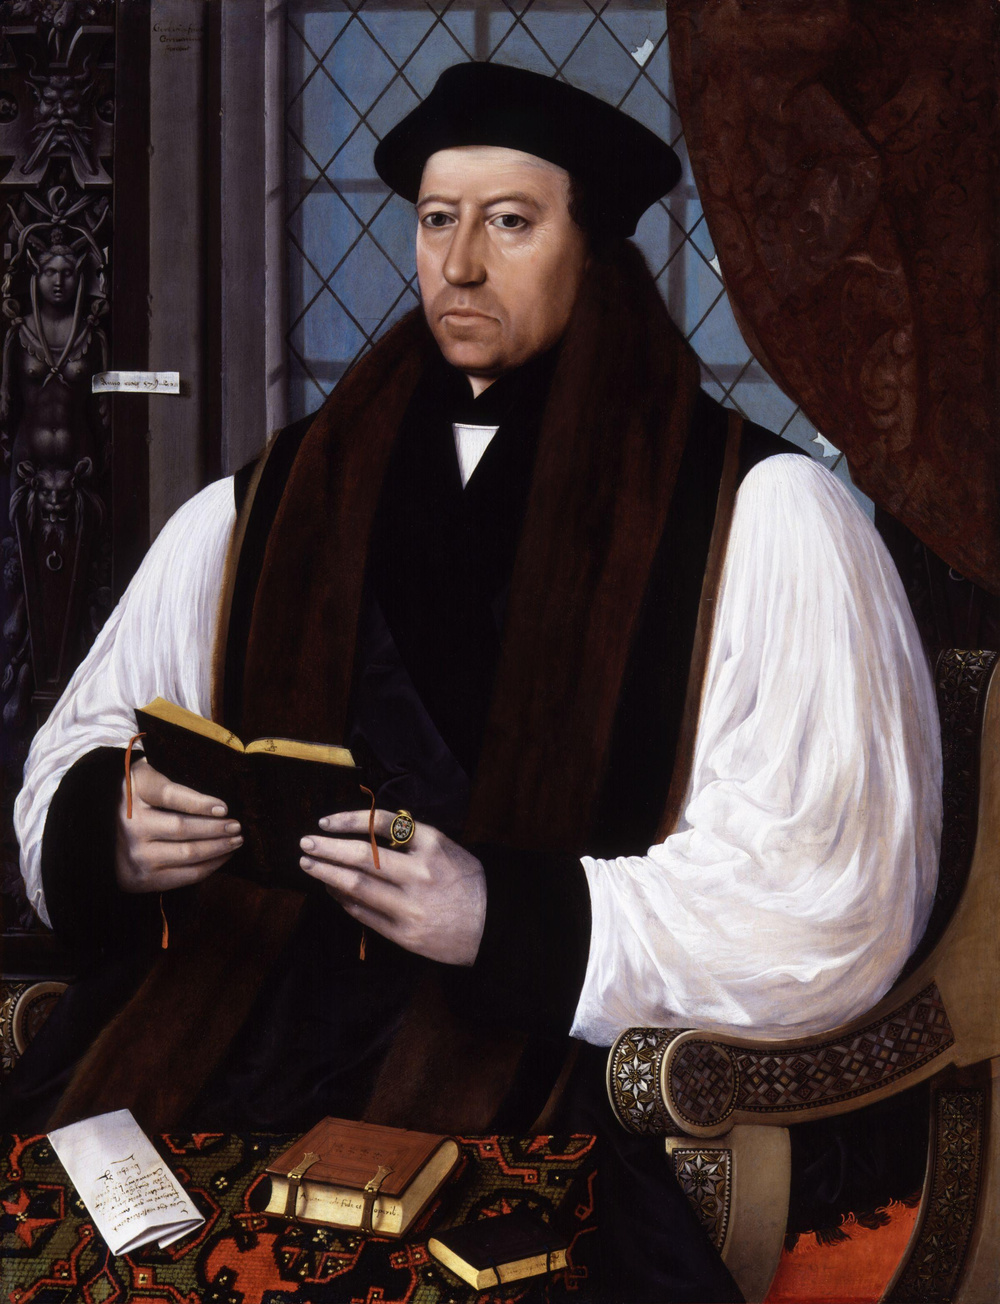 Thomas Cranmer, Archbishop of Canterbury and Martyr